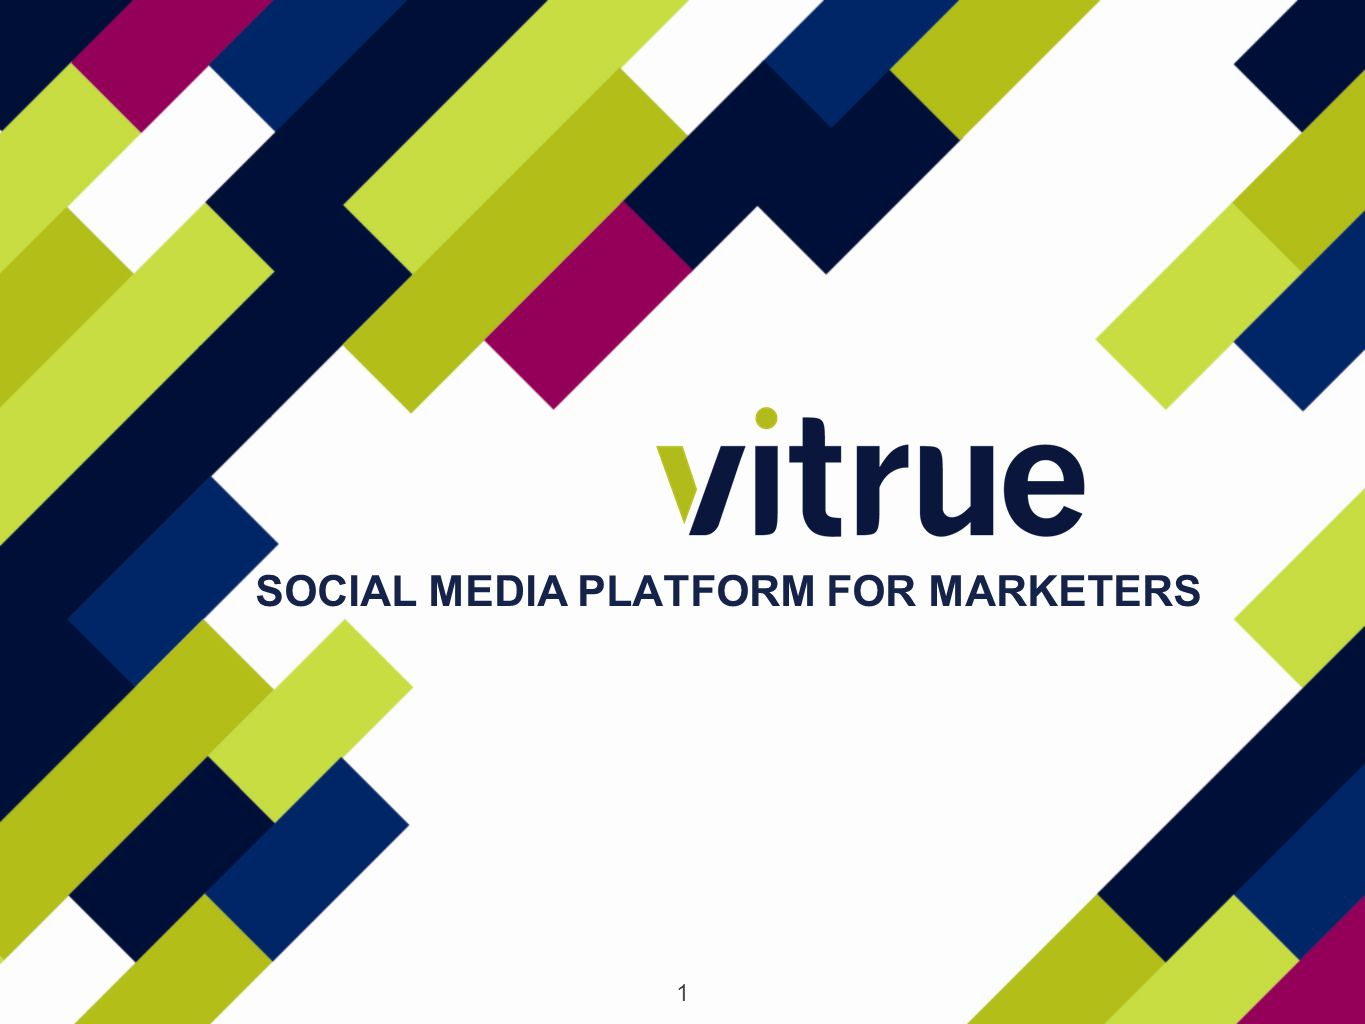 1 SOCIAL MEDIA PLATFORM FOR MARKETERS